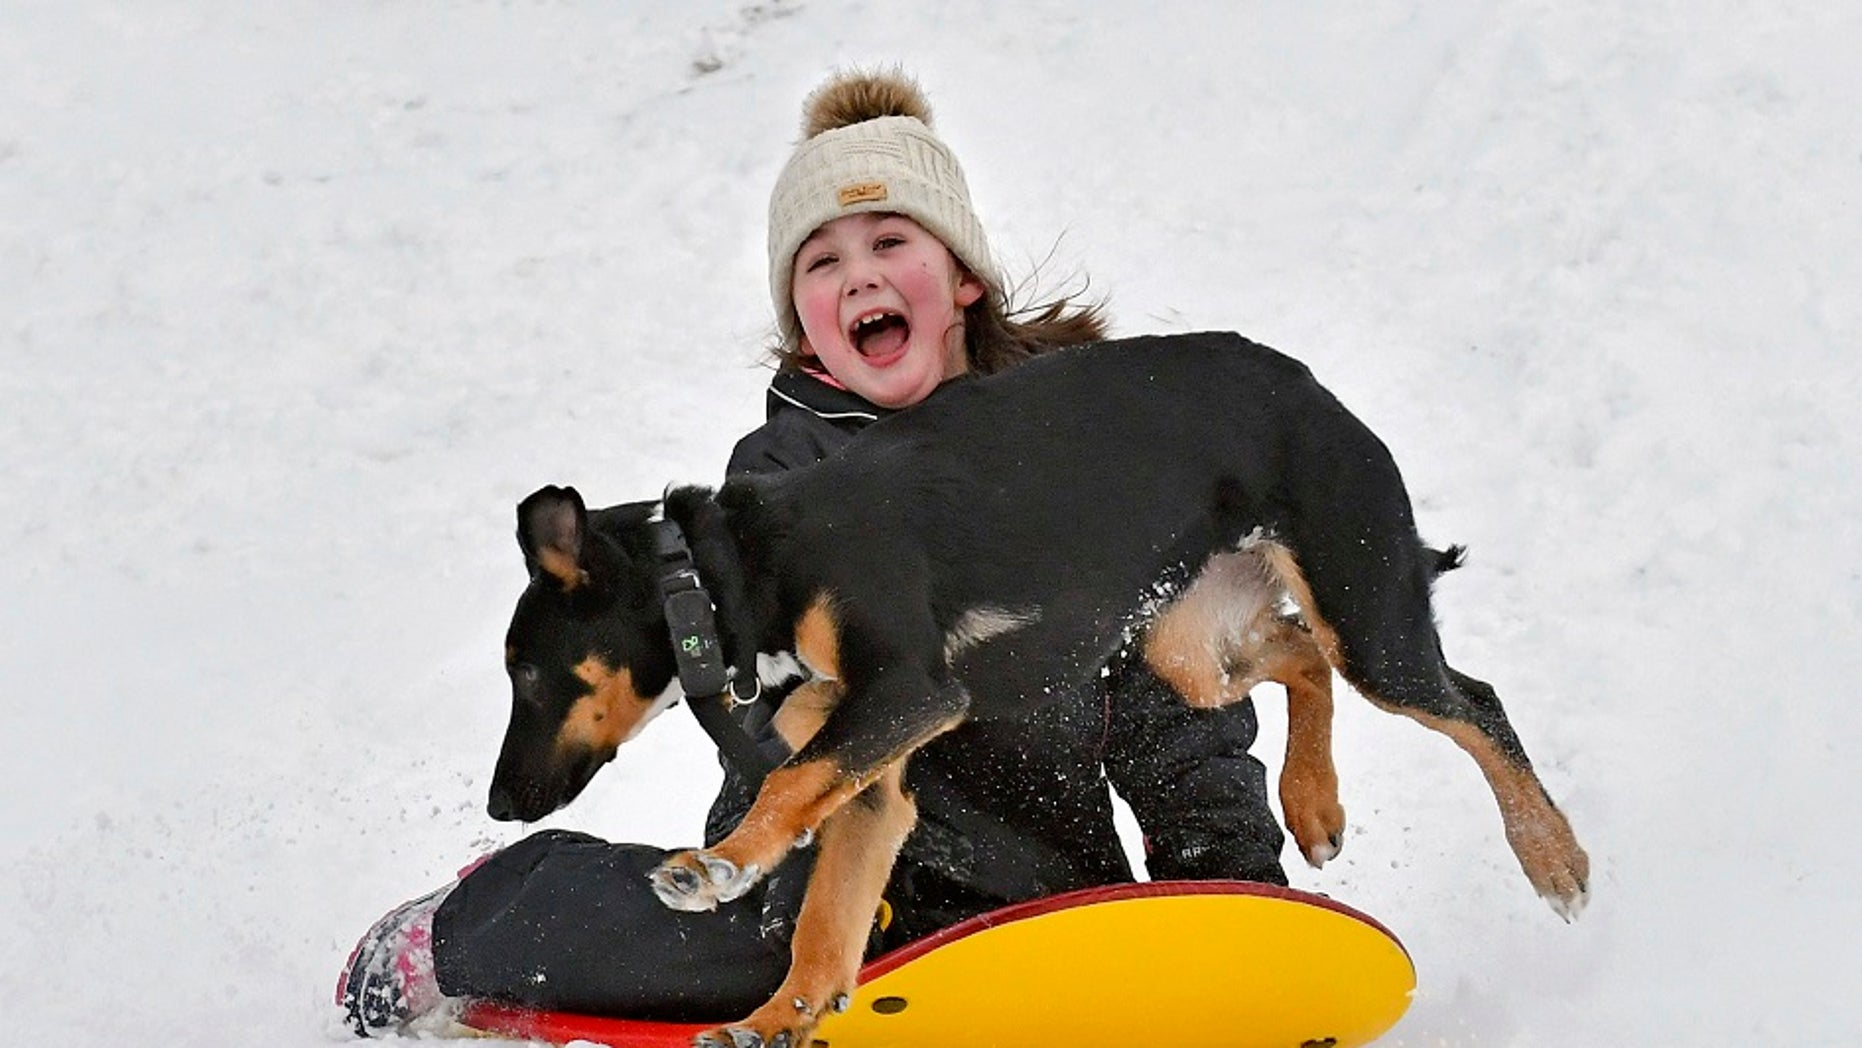 Kylie Silvia 7 of Sedro-Woolley Wash. slides down a hill Feb. 9 2019 at the Northern State Recreation Area while being chased by Atlas one of the two family dogs